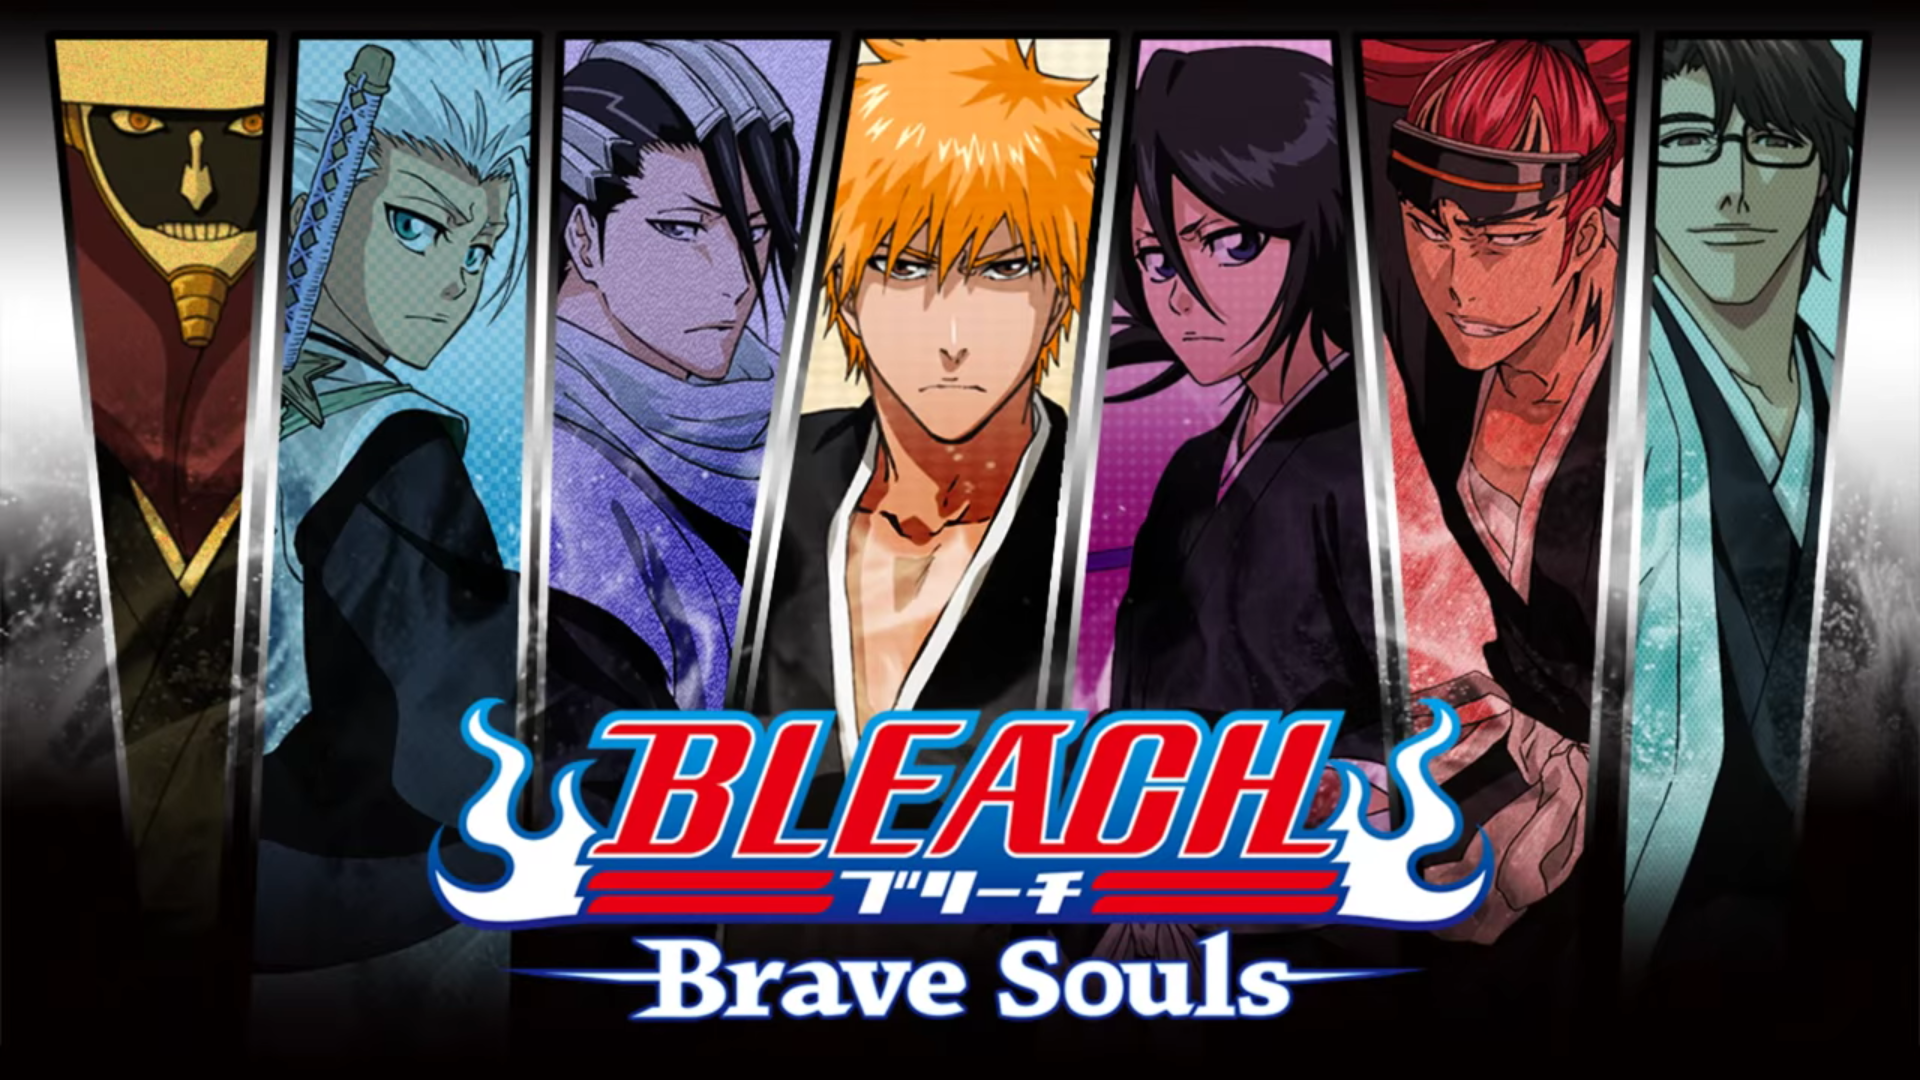 Bleach Brave Souls mélange beat'em'all et RPG sur Android